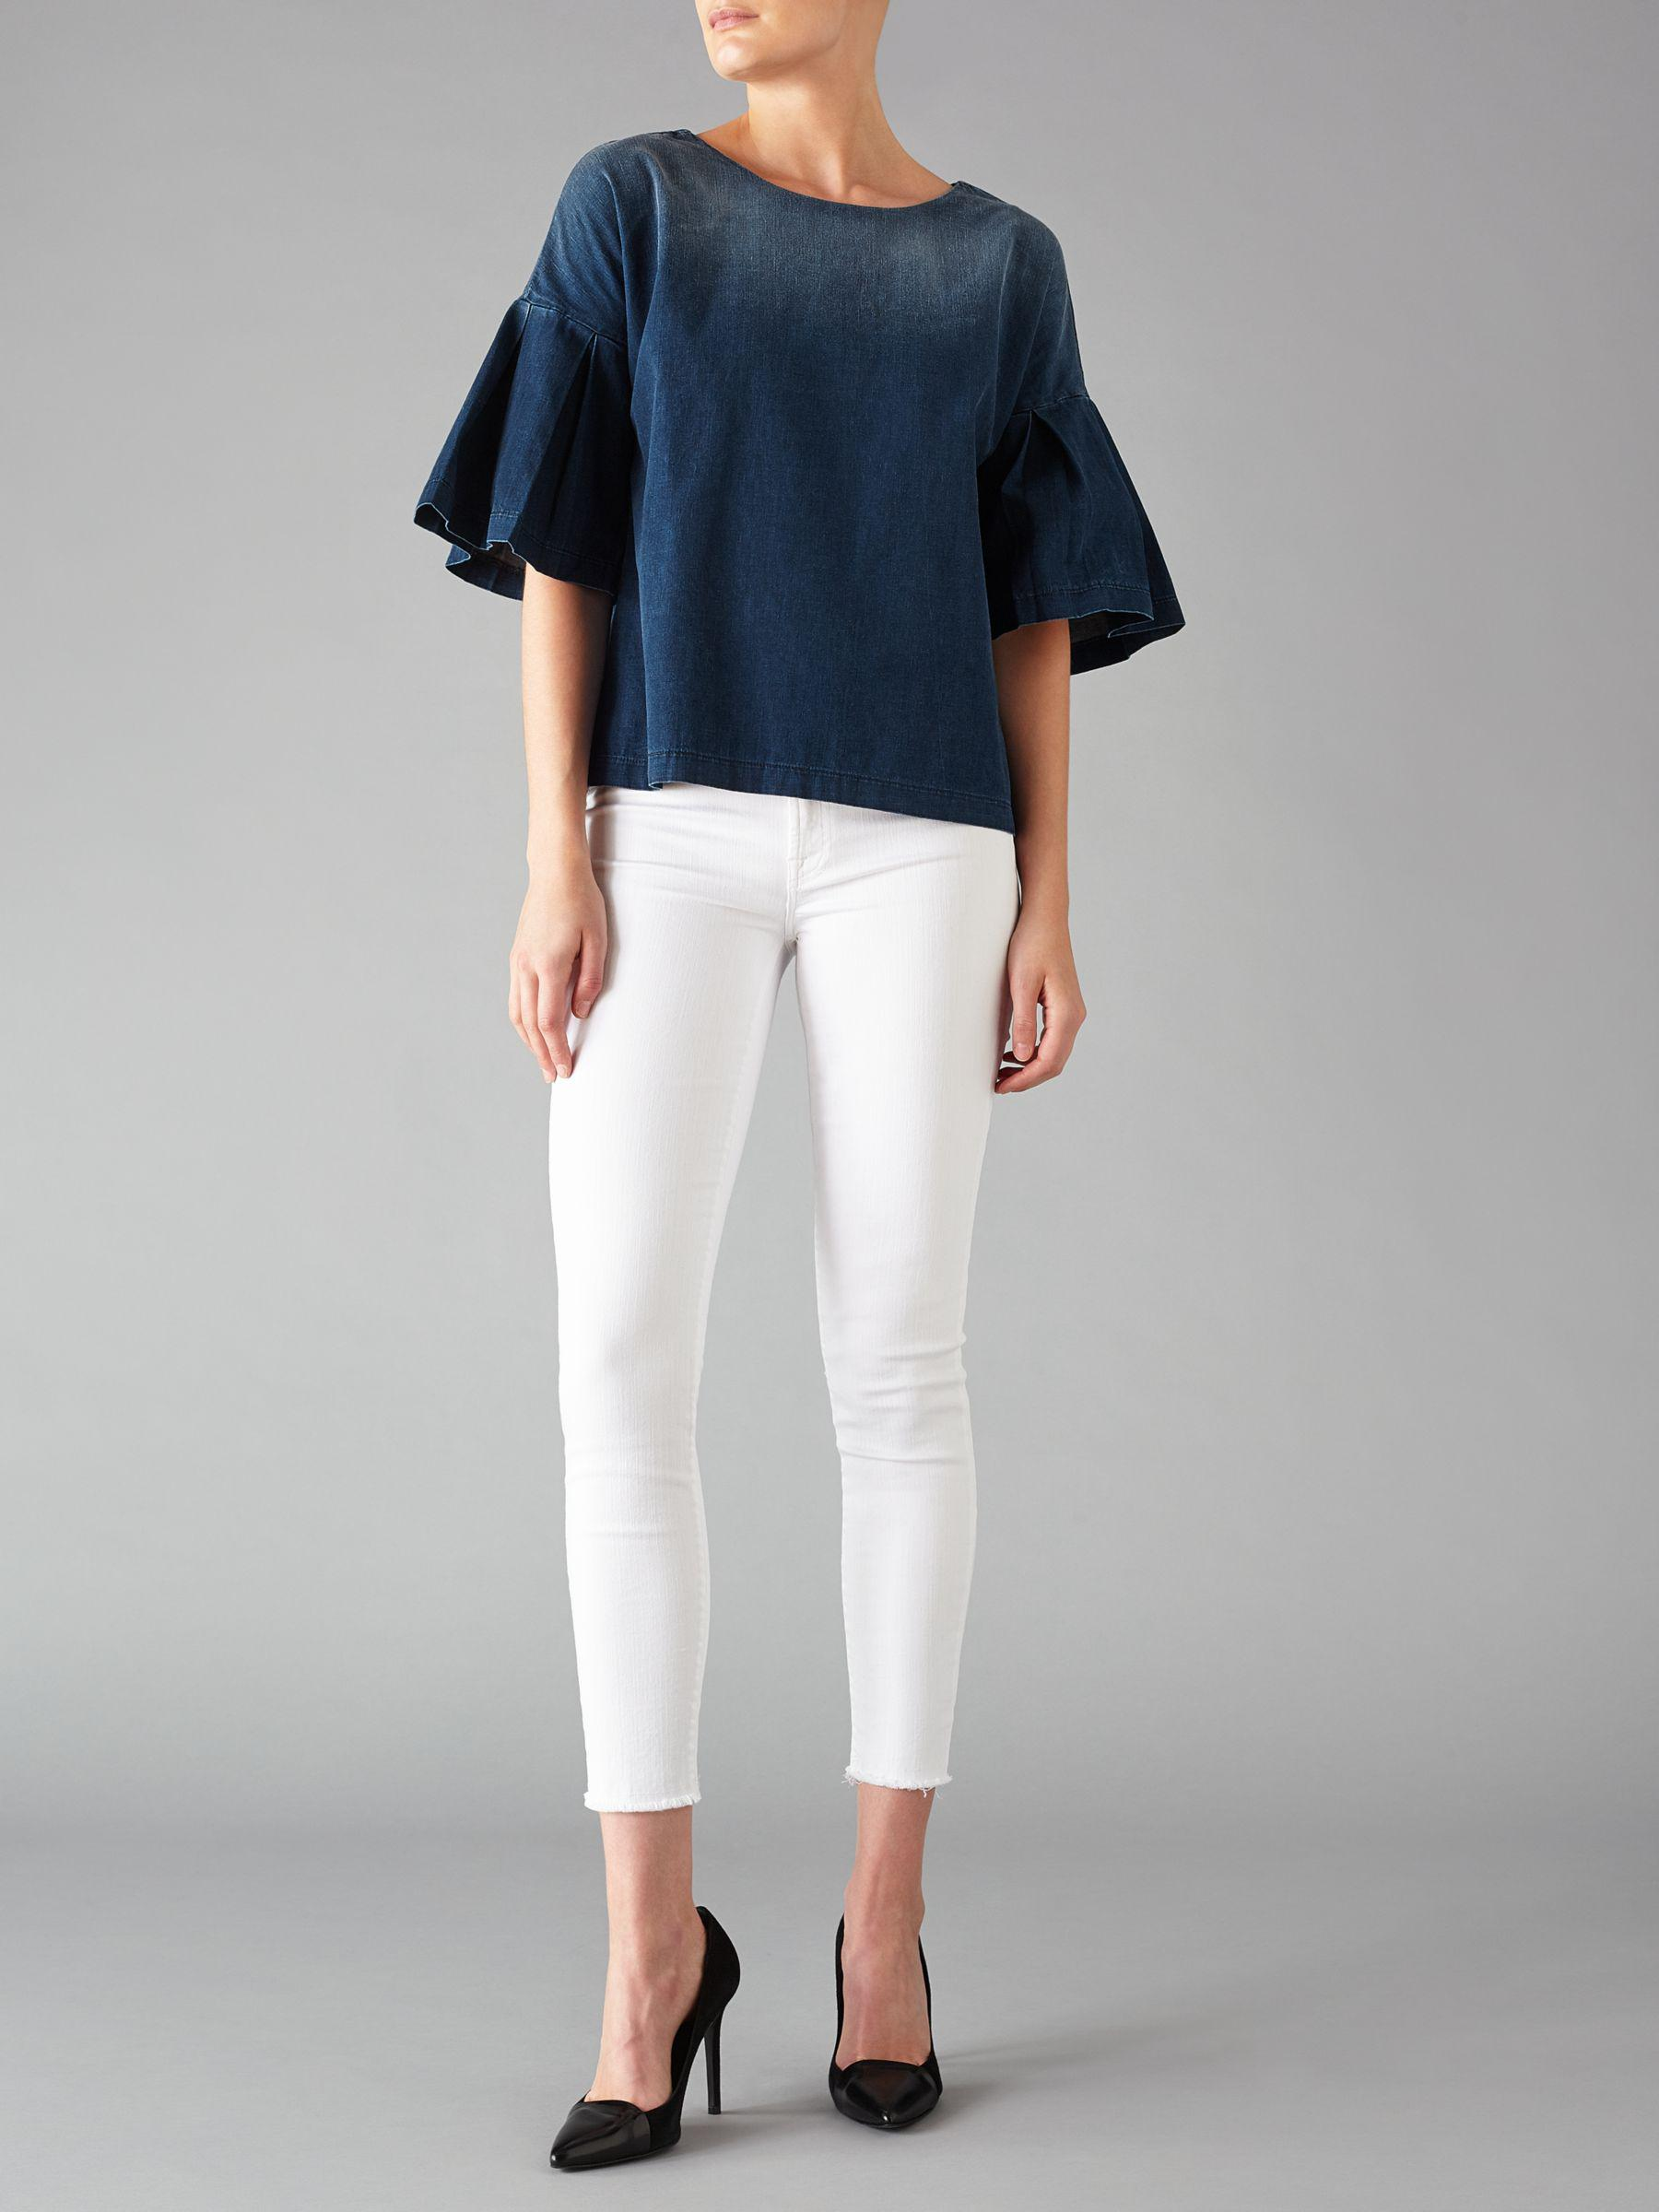 7 For All Mankind Denim English Harbour Blouse in Denim (Blue)